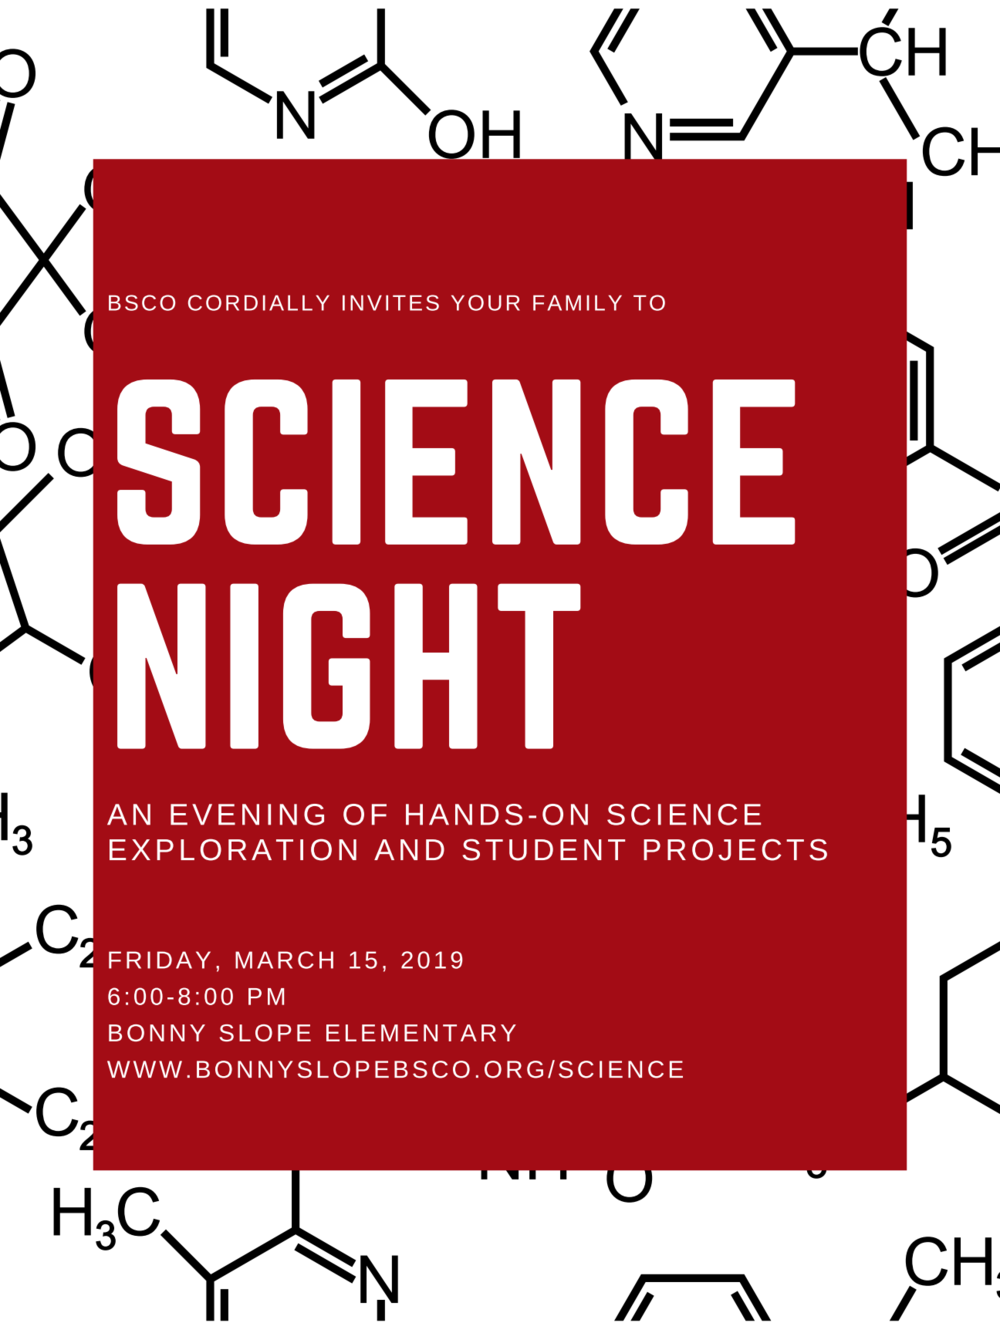 2019 Color Science Night Poster_03.png